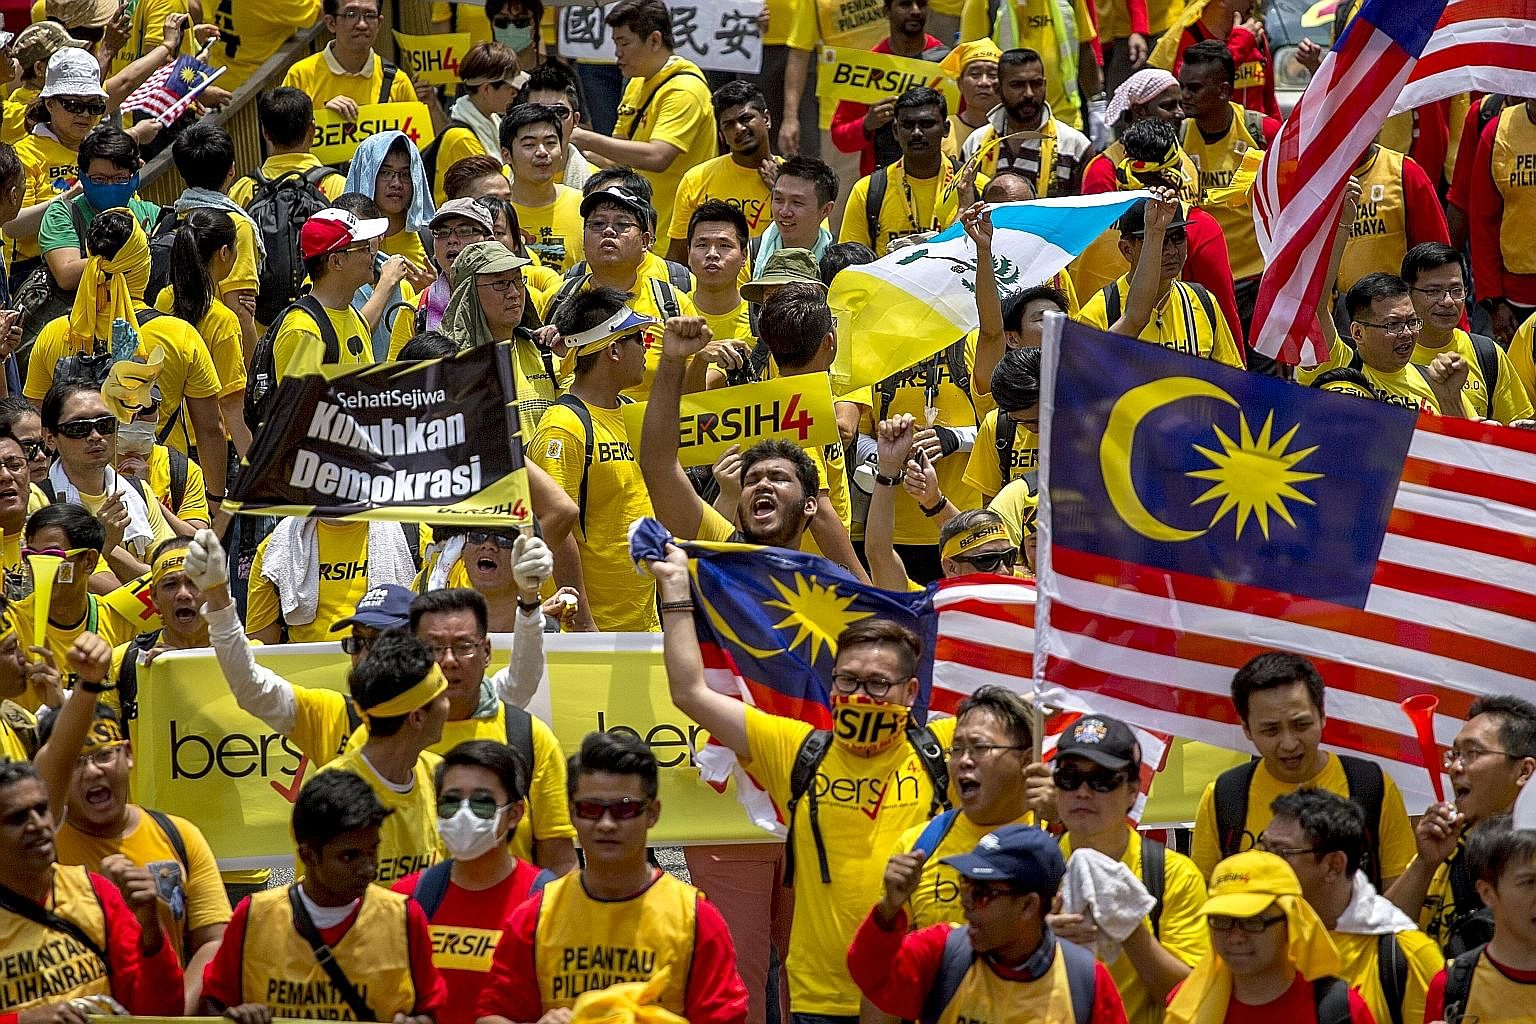 Supporters of pro-democracy group Bersih gathering near Kuala Lumpur's Chinatown on Aug 29.